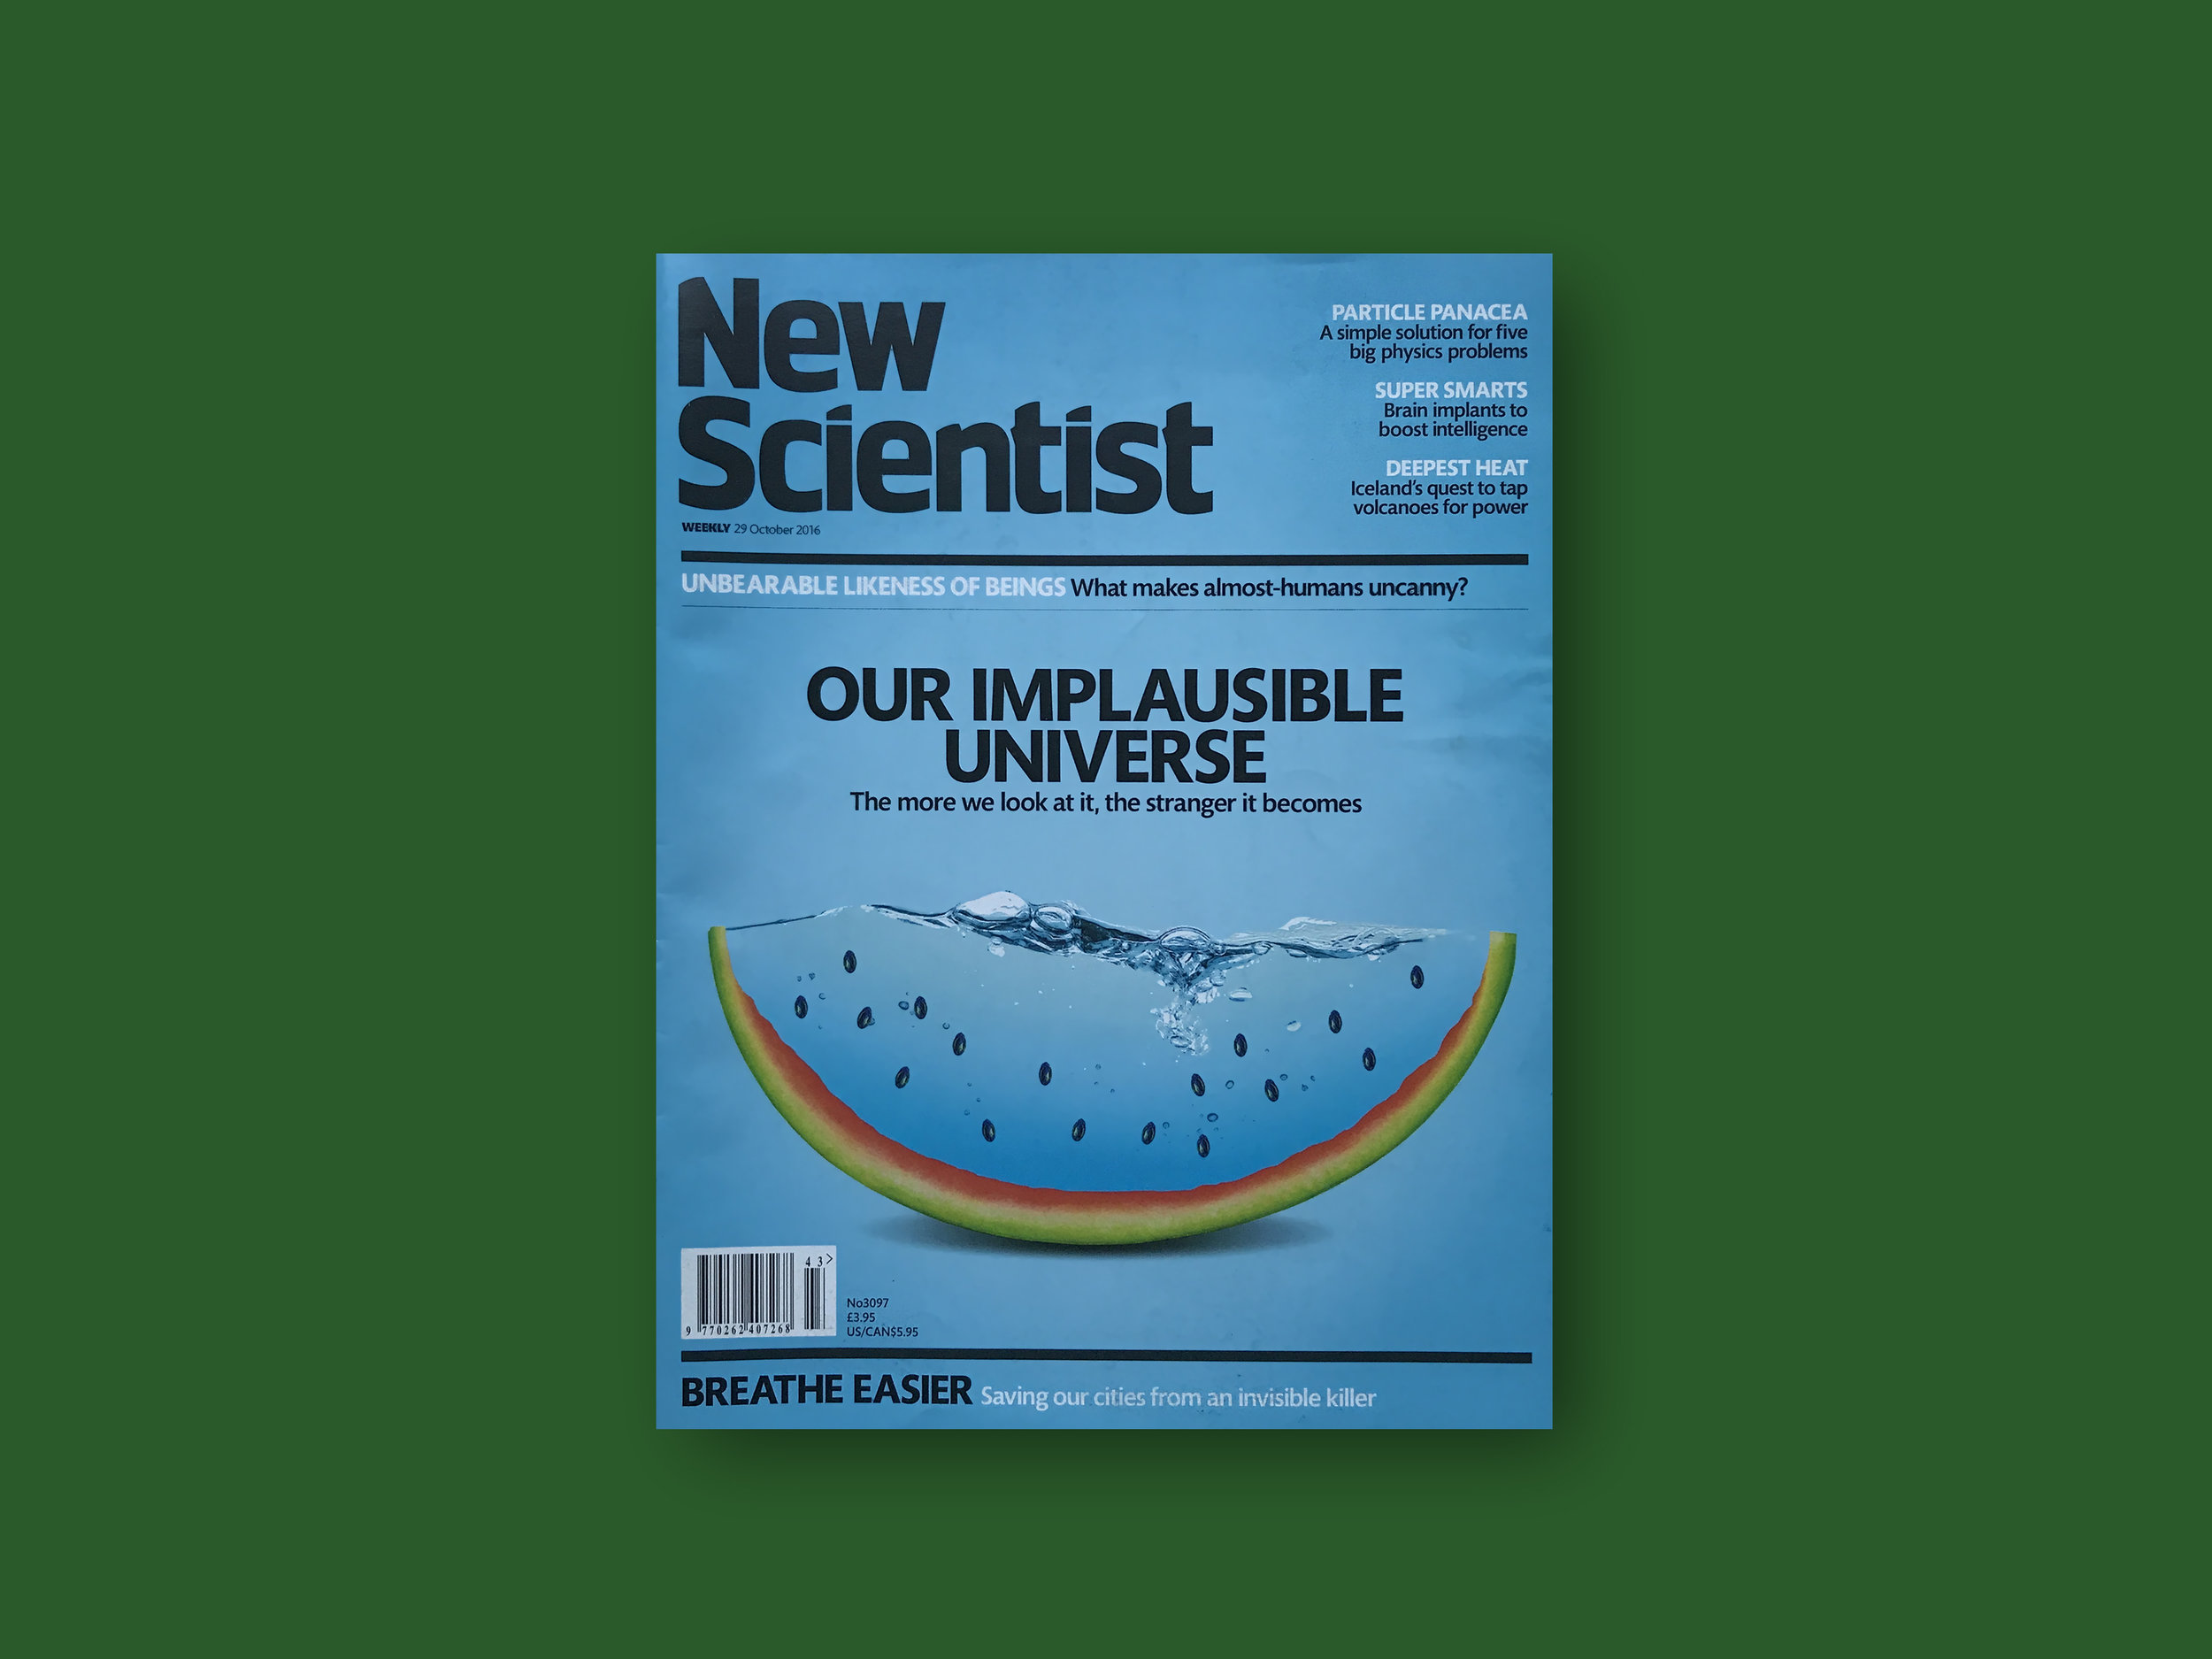 2016   New Scientist, (UK)Issue 2097, ' Our Implausible Universe'